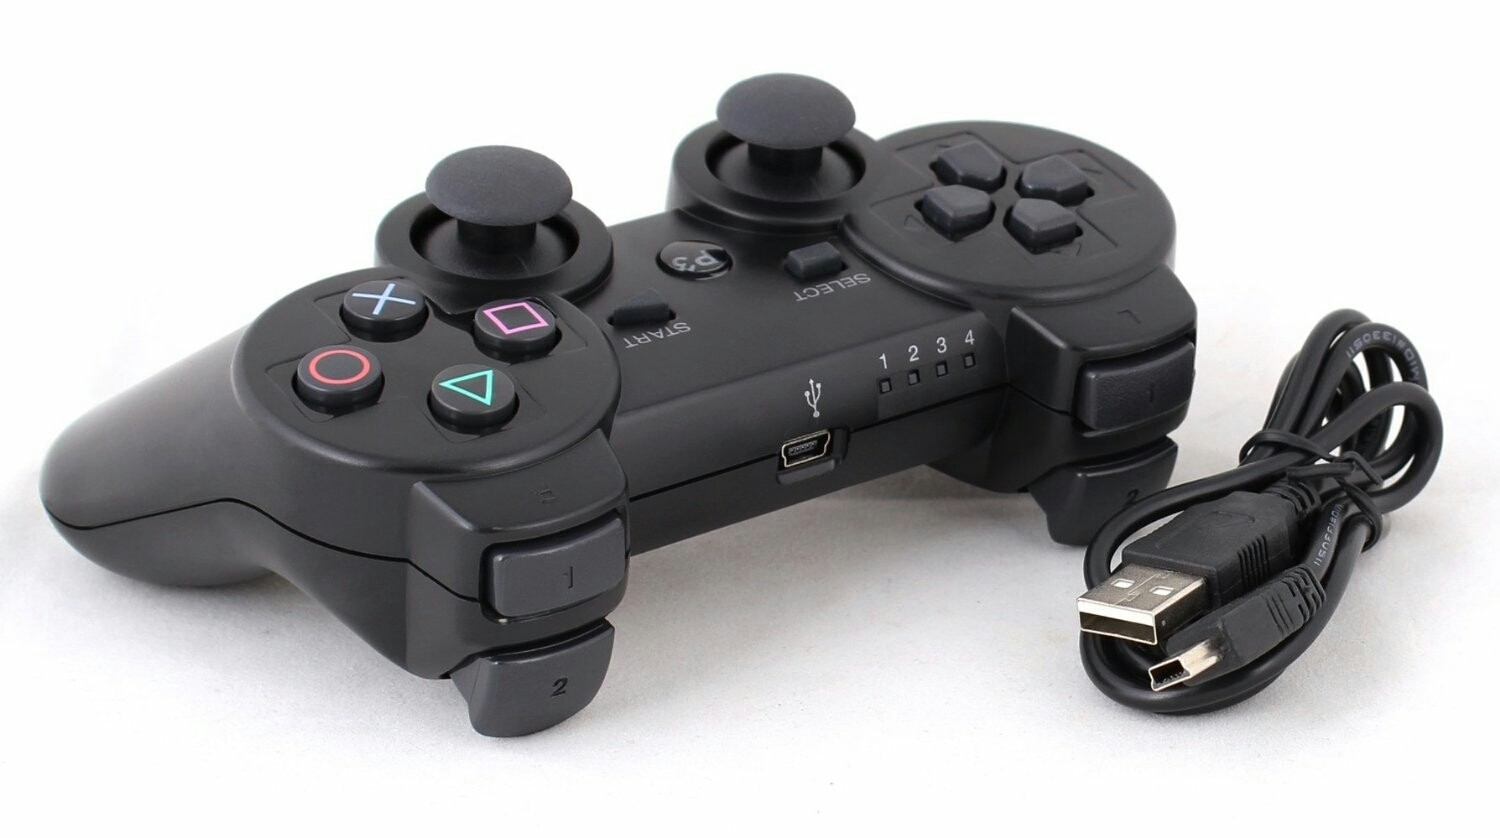 Manette PS3 PlayStation 3 Controller Wireless 6 Axis - ShopEasy